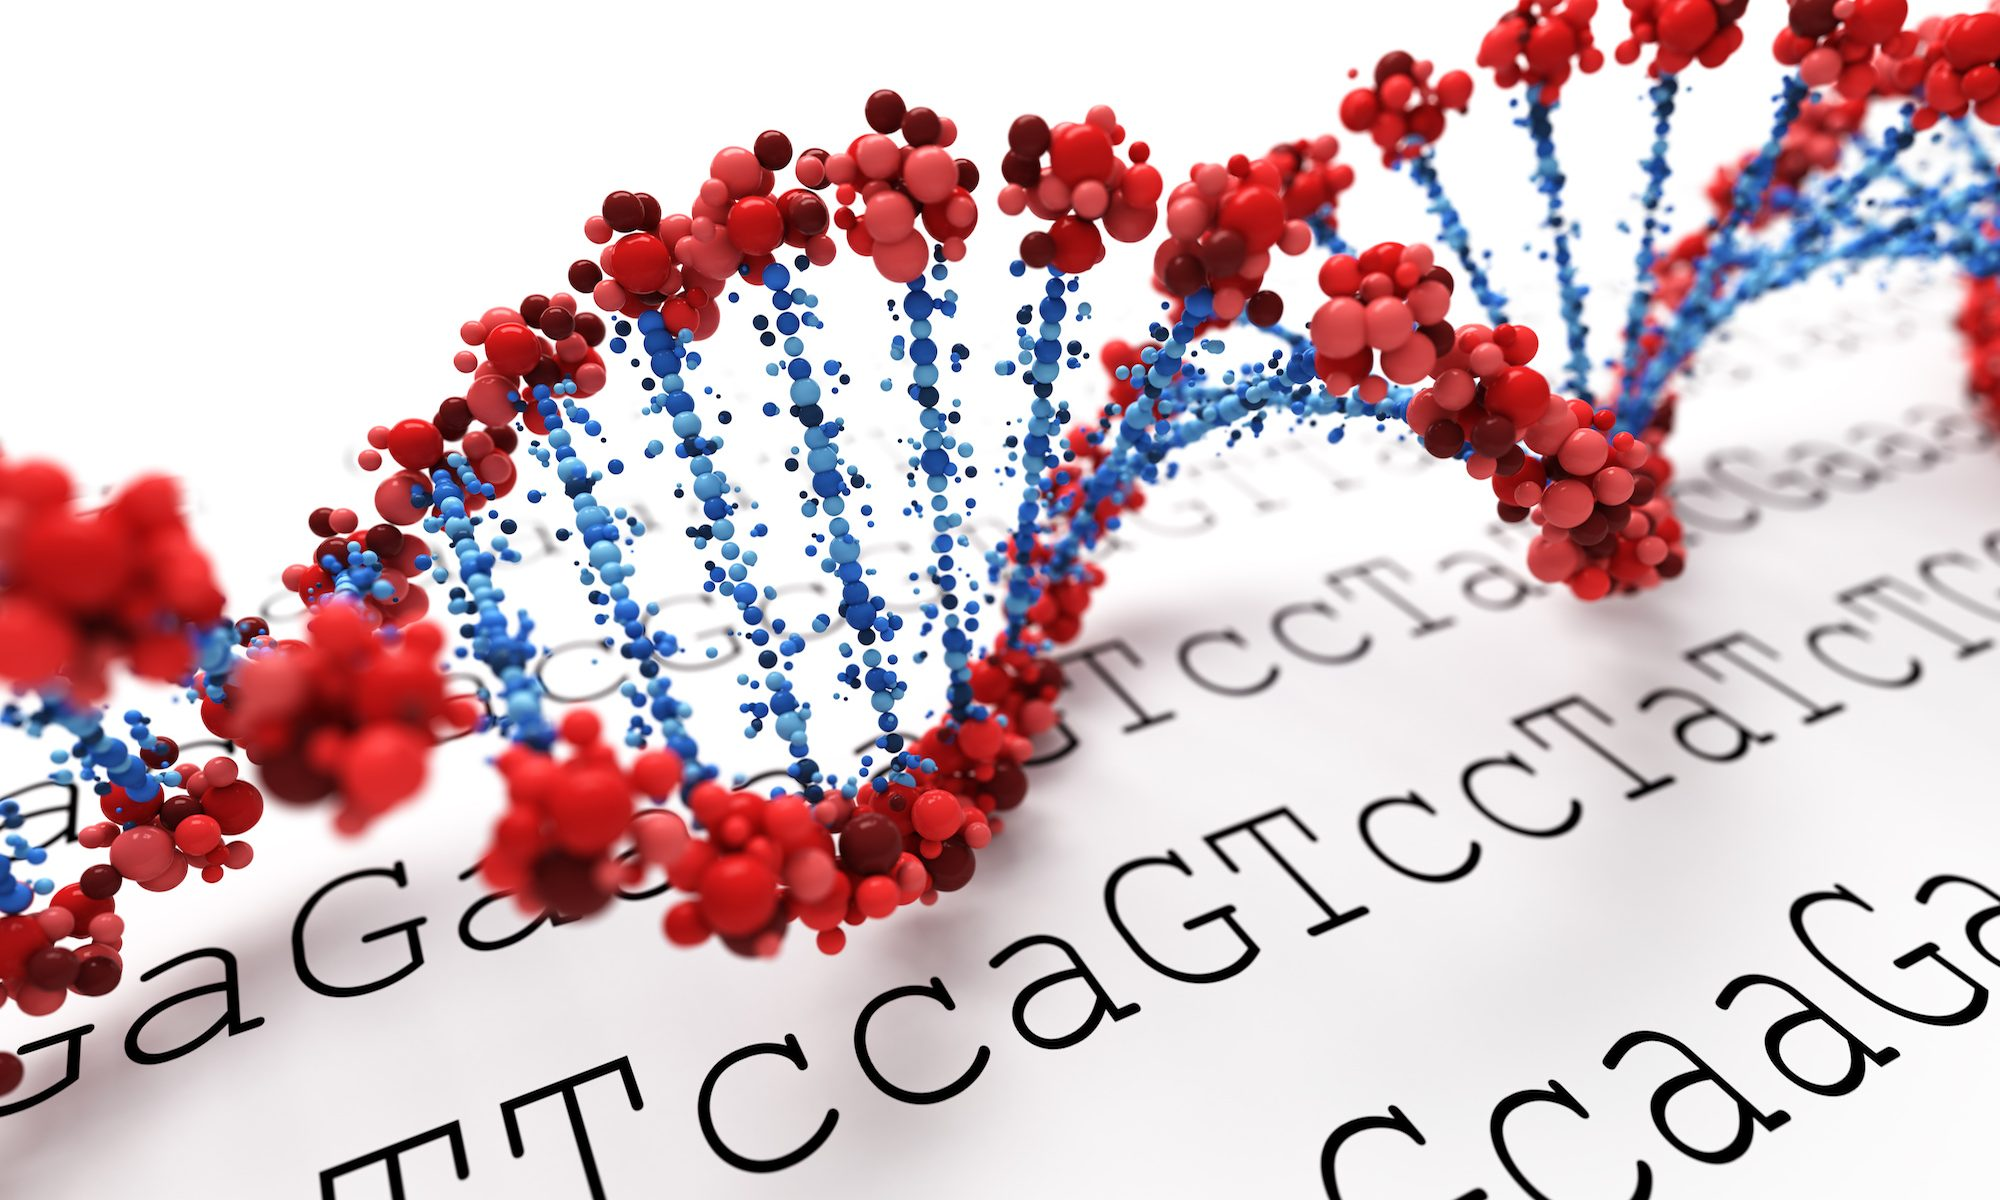 illustration of double helix with genetic sequence in background